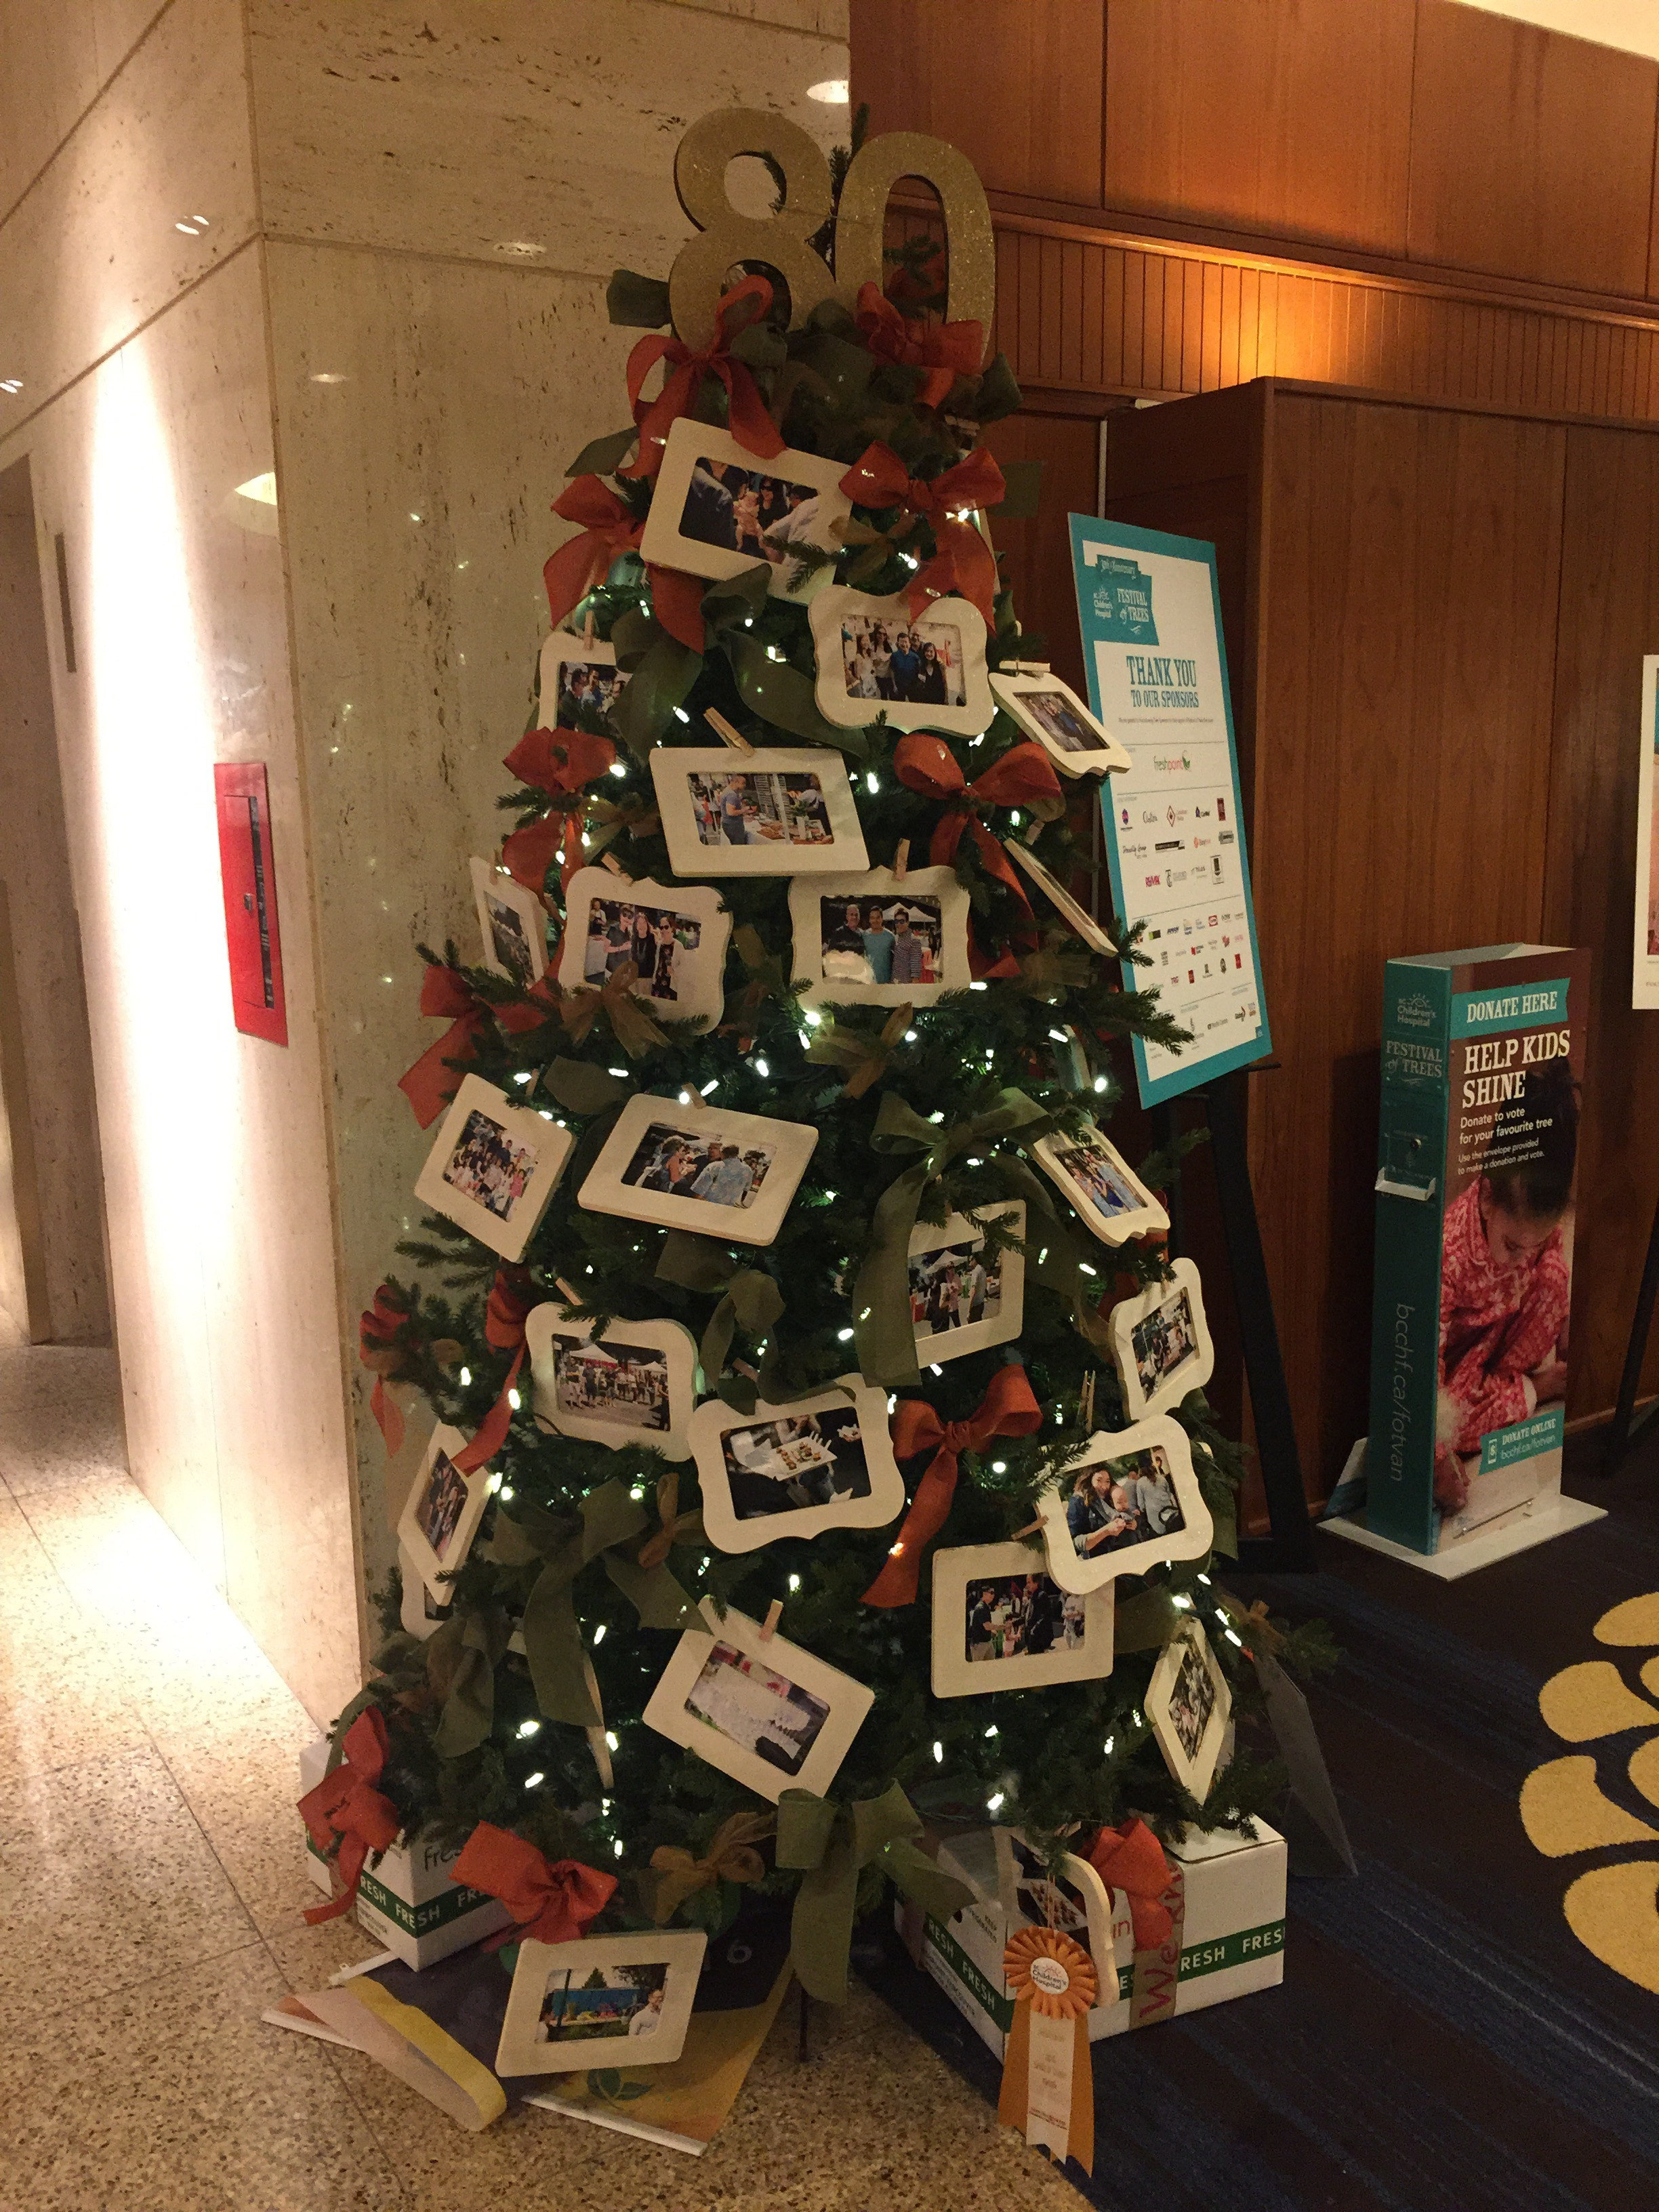 FreshPoint Vancouver's beautifully decorated holiday tree for the Festival of Trees supporting the BC Children's Hospital Foundation.